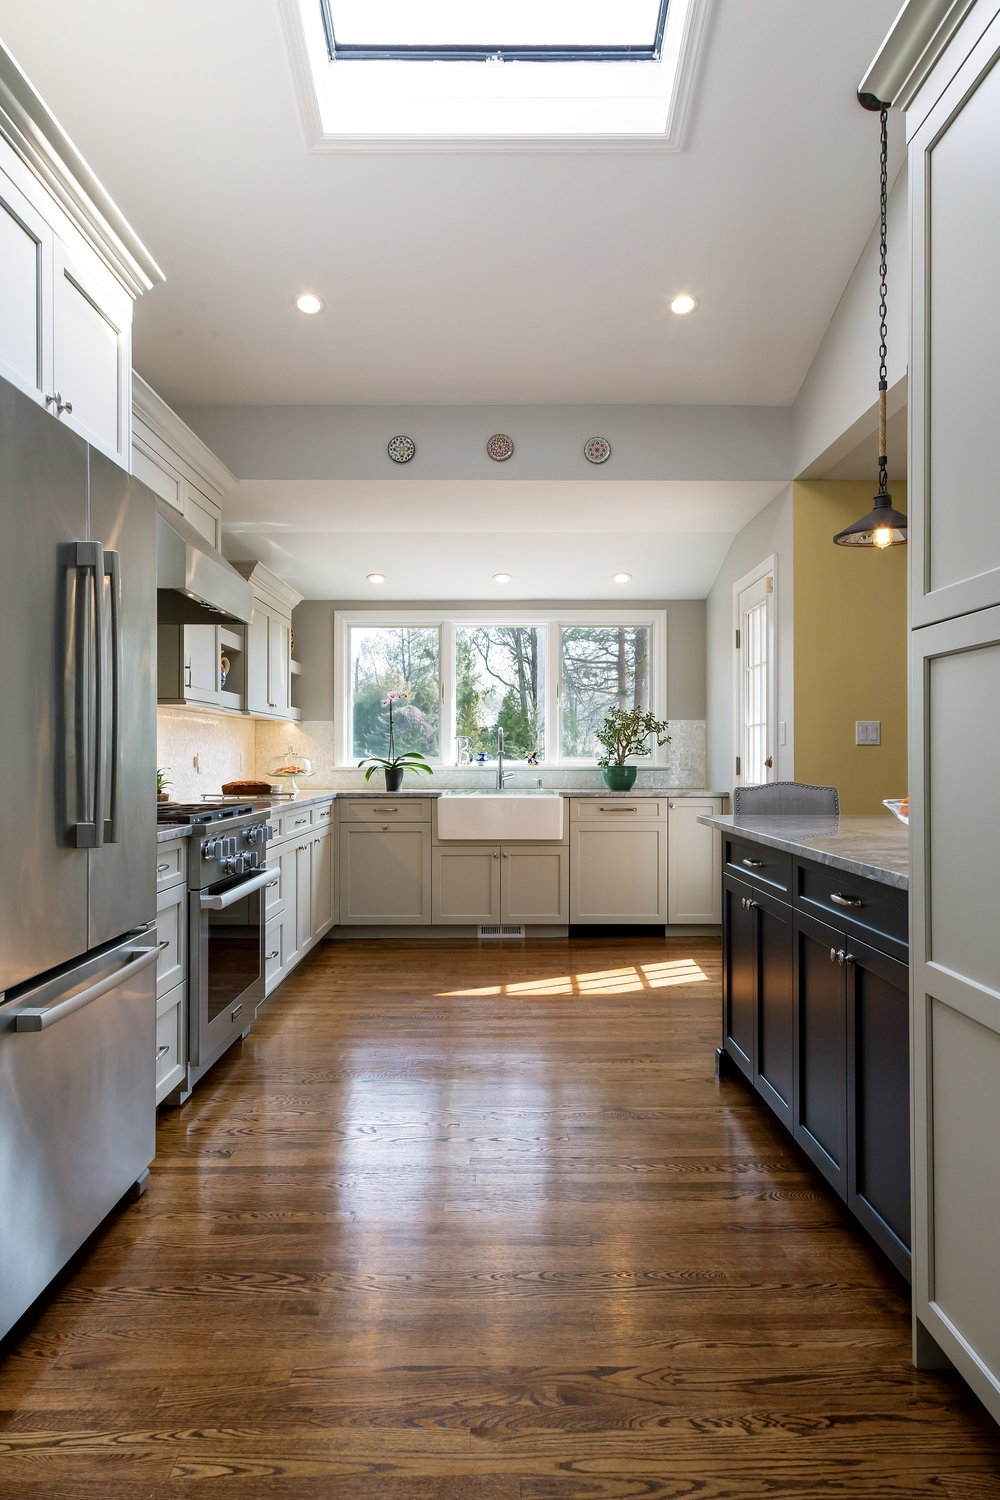 Transitional style kitchen with three kitchen bay window